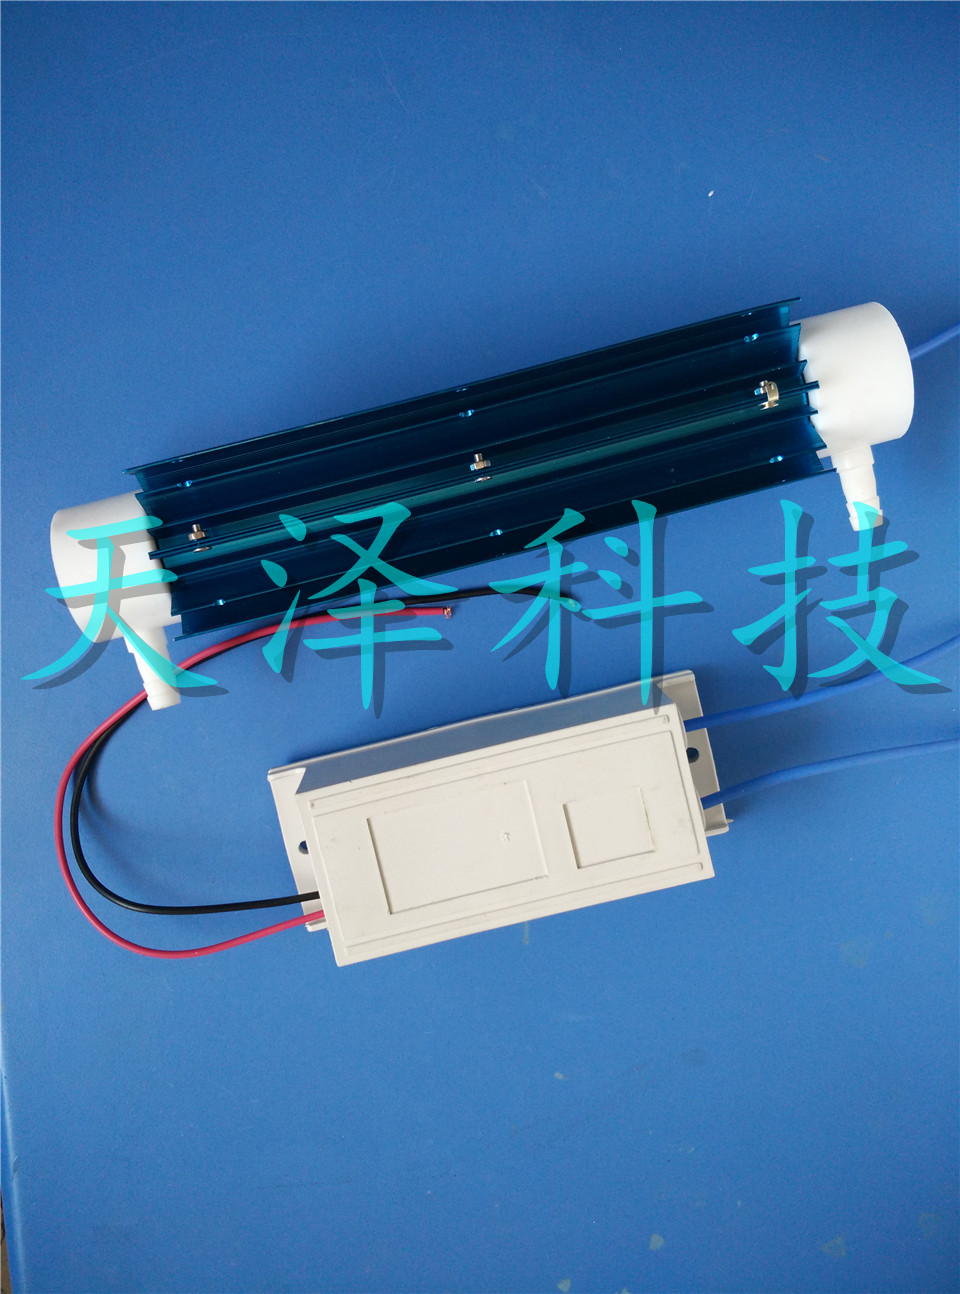 220v10 g g/h quartz tube type ozone generator fixed frequency power supply water treatment air disinfection dual purpose corona discharge household 220v ozone generator fq 301 ozone water treatment 200 300mg h china